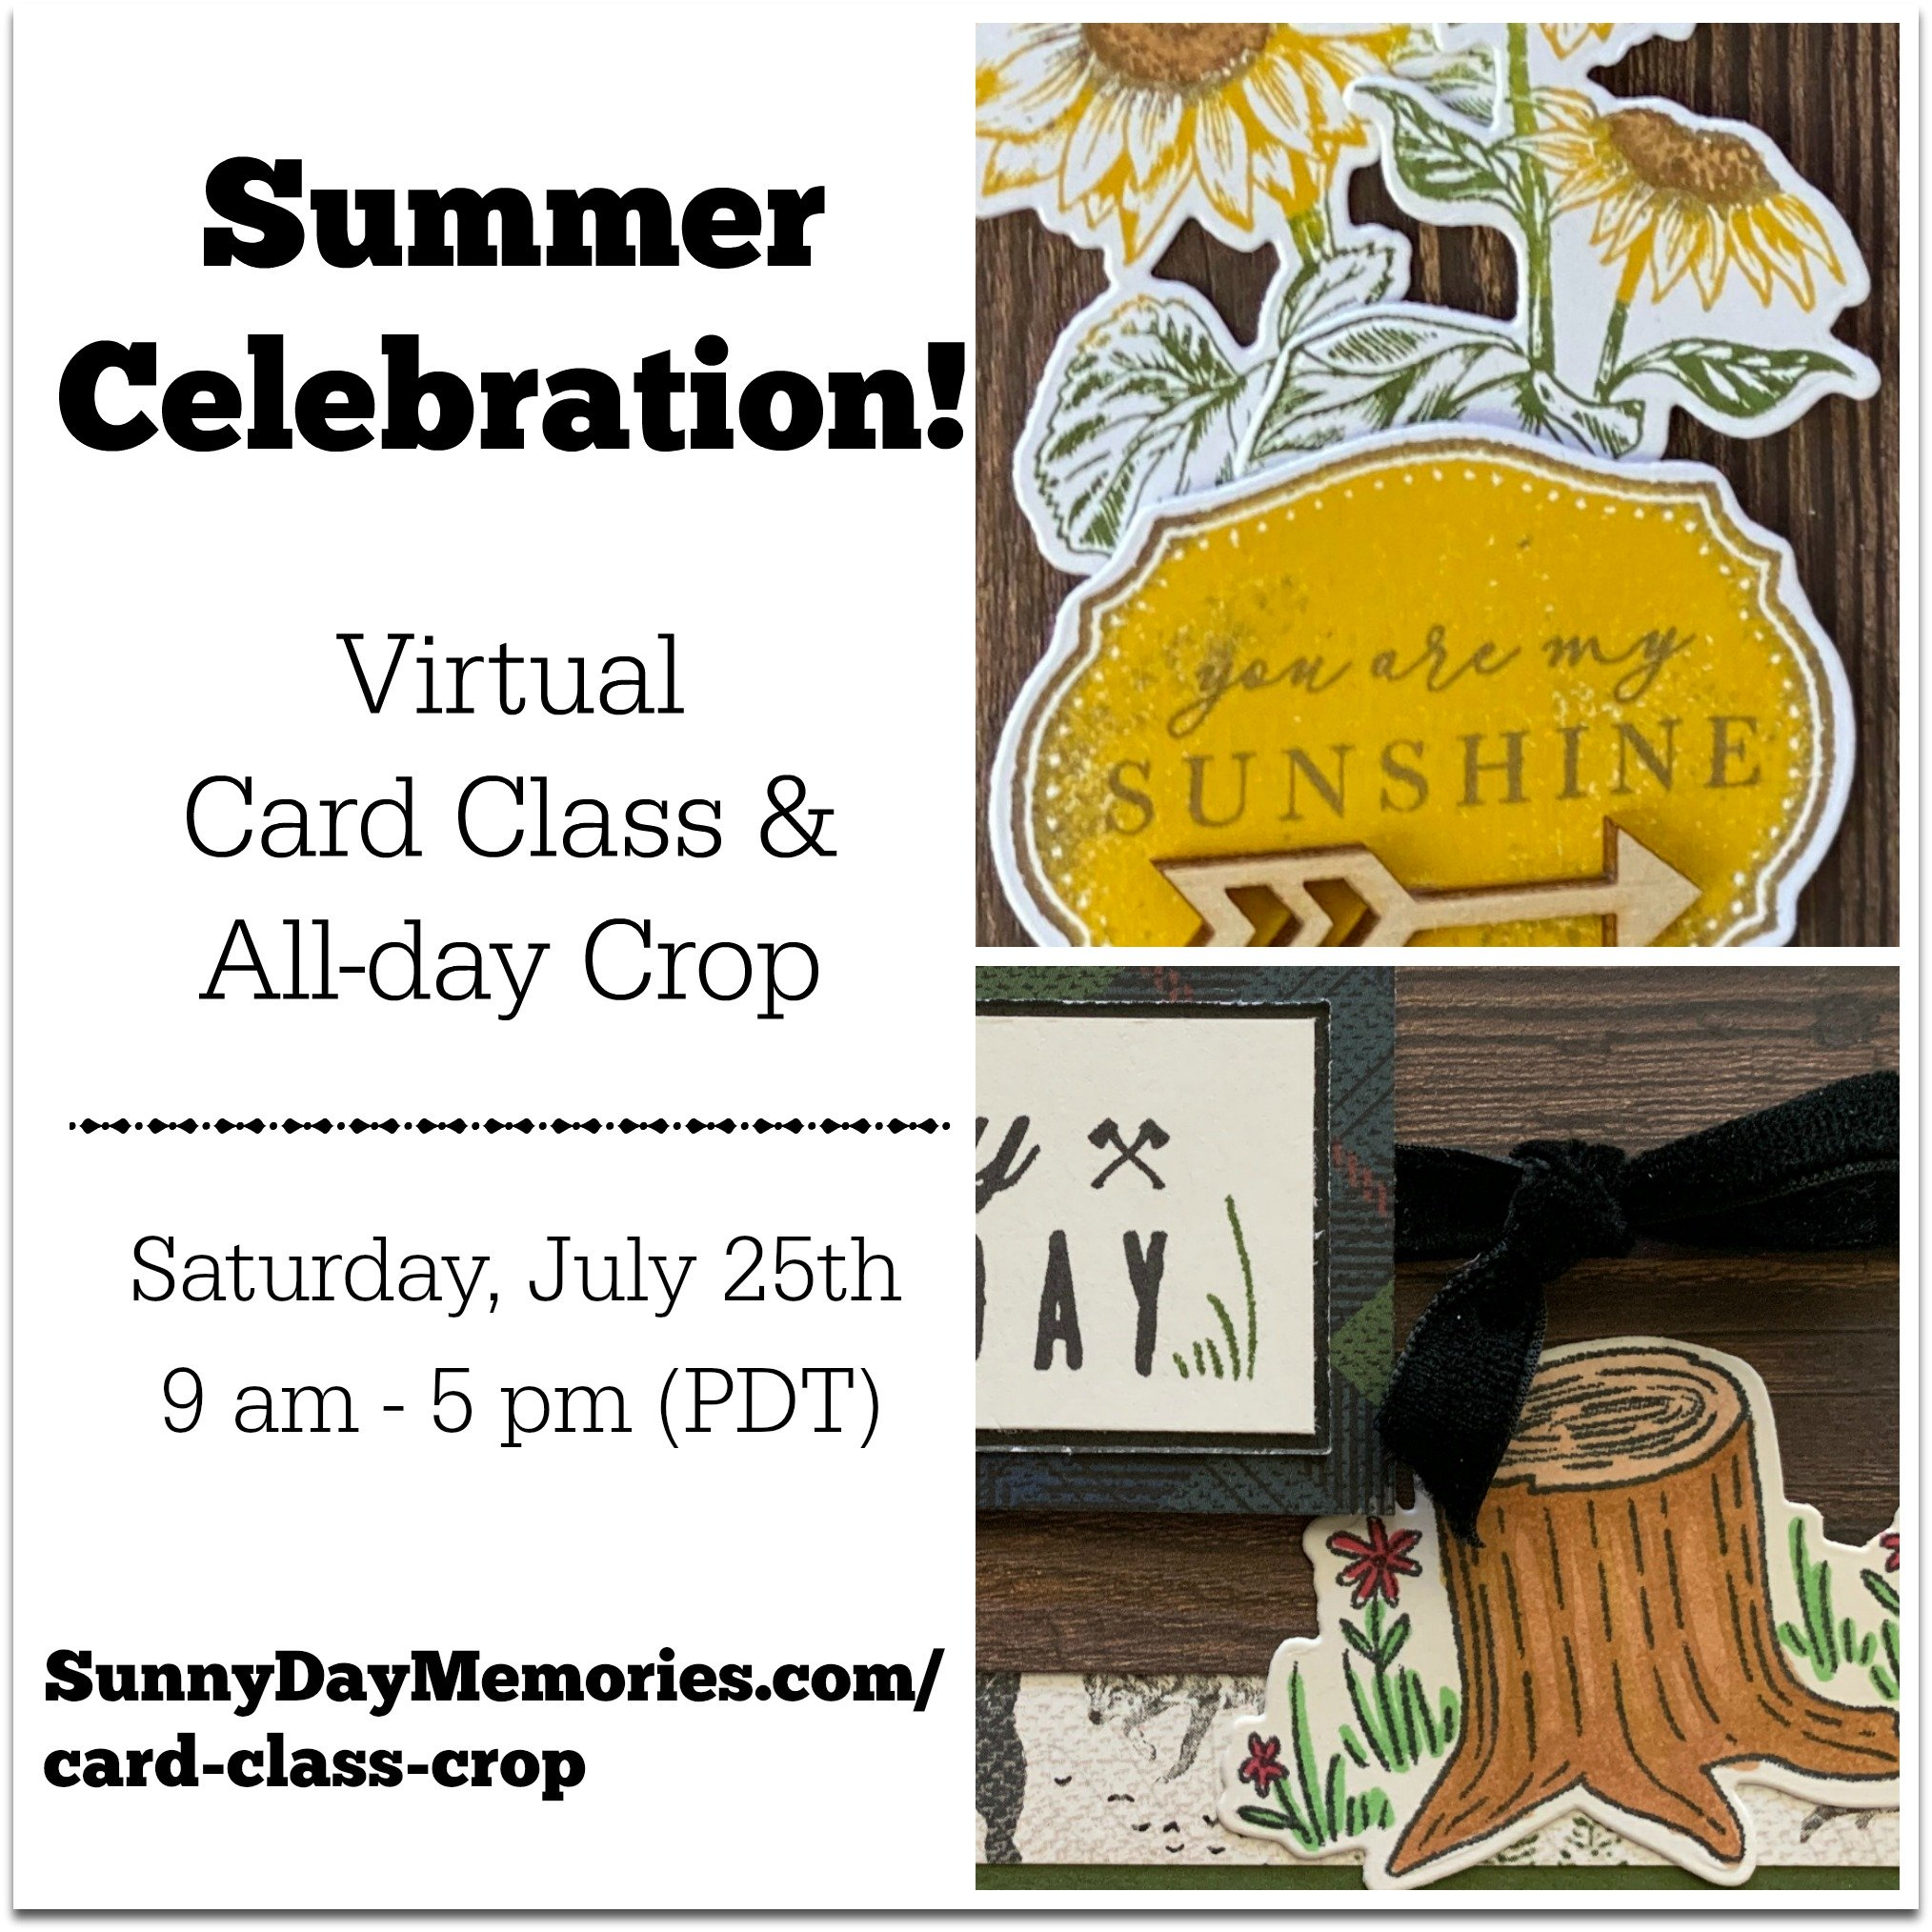 Summer Celebration Virtual Card Event + Crop